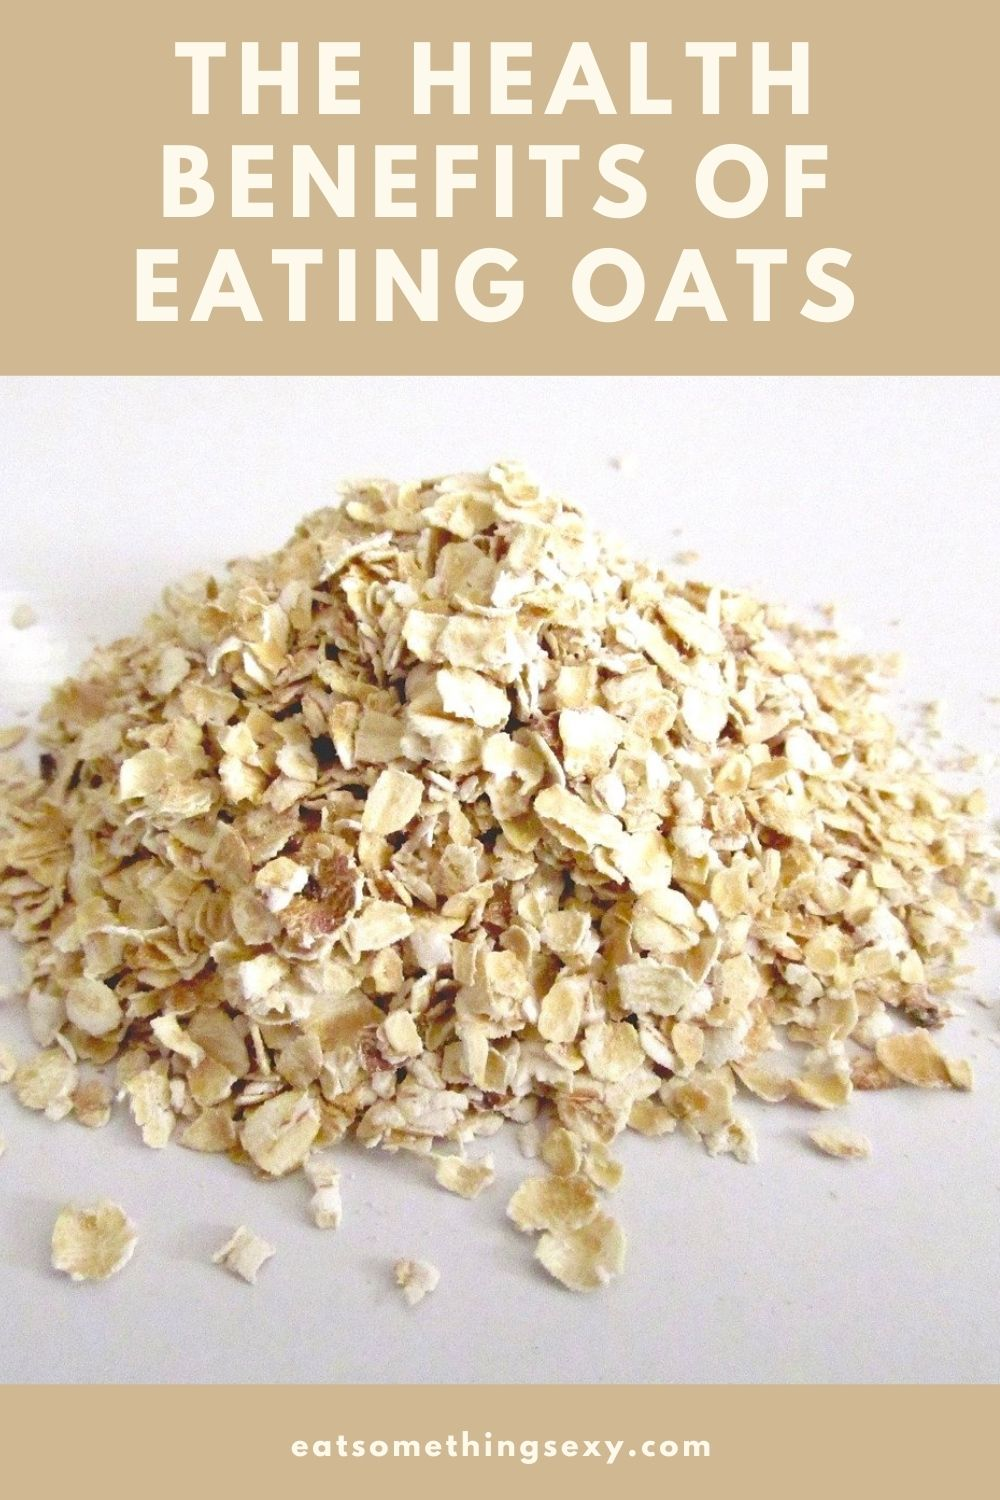 oats and testosterone graphic